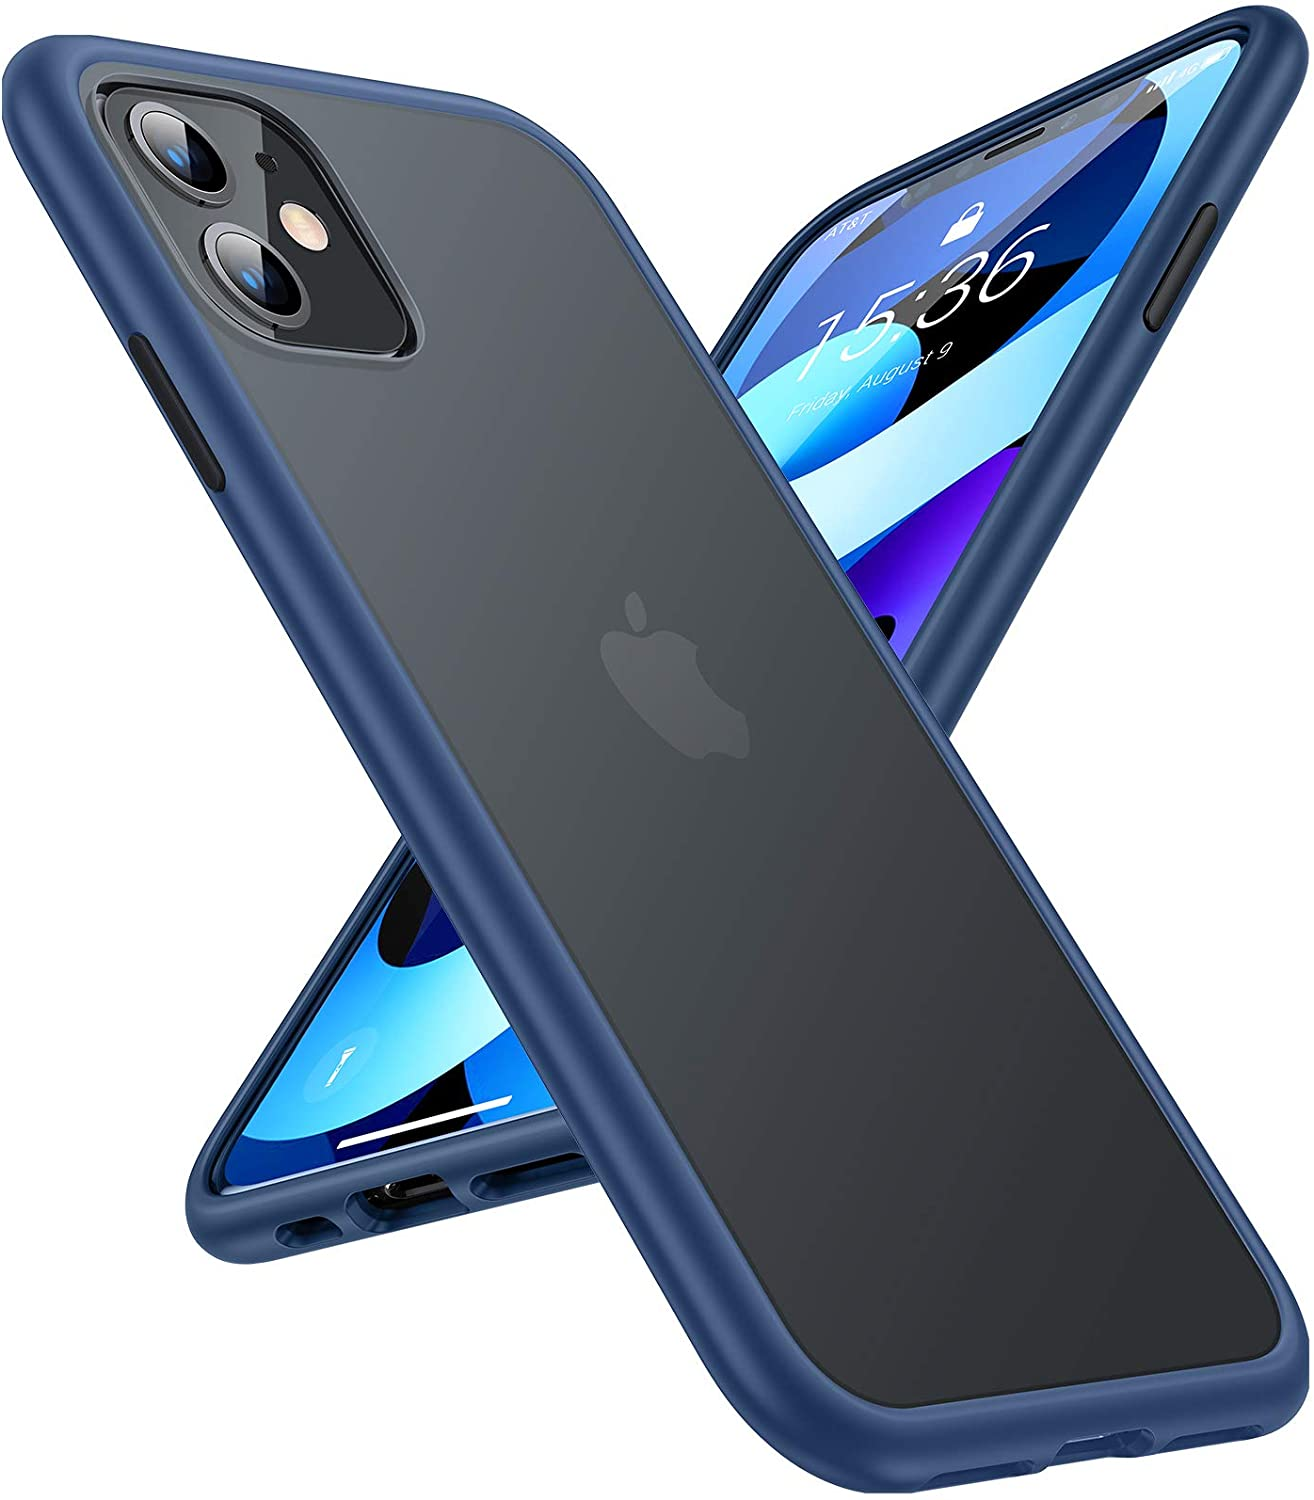 TORRAS Shockproof Compatible for iPhone 11 Case, [6FT Military Grade Drop Protection] Translucent Hard Back with Silicone Bumper, Slim Non-Slip iPhone 11 Phone Case (6.1''), Cerulean Blue